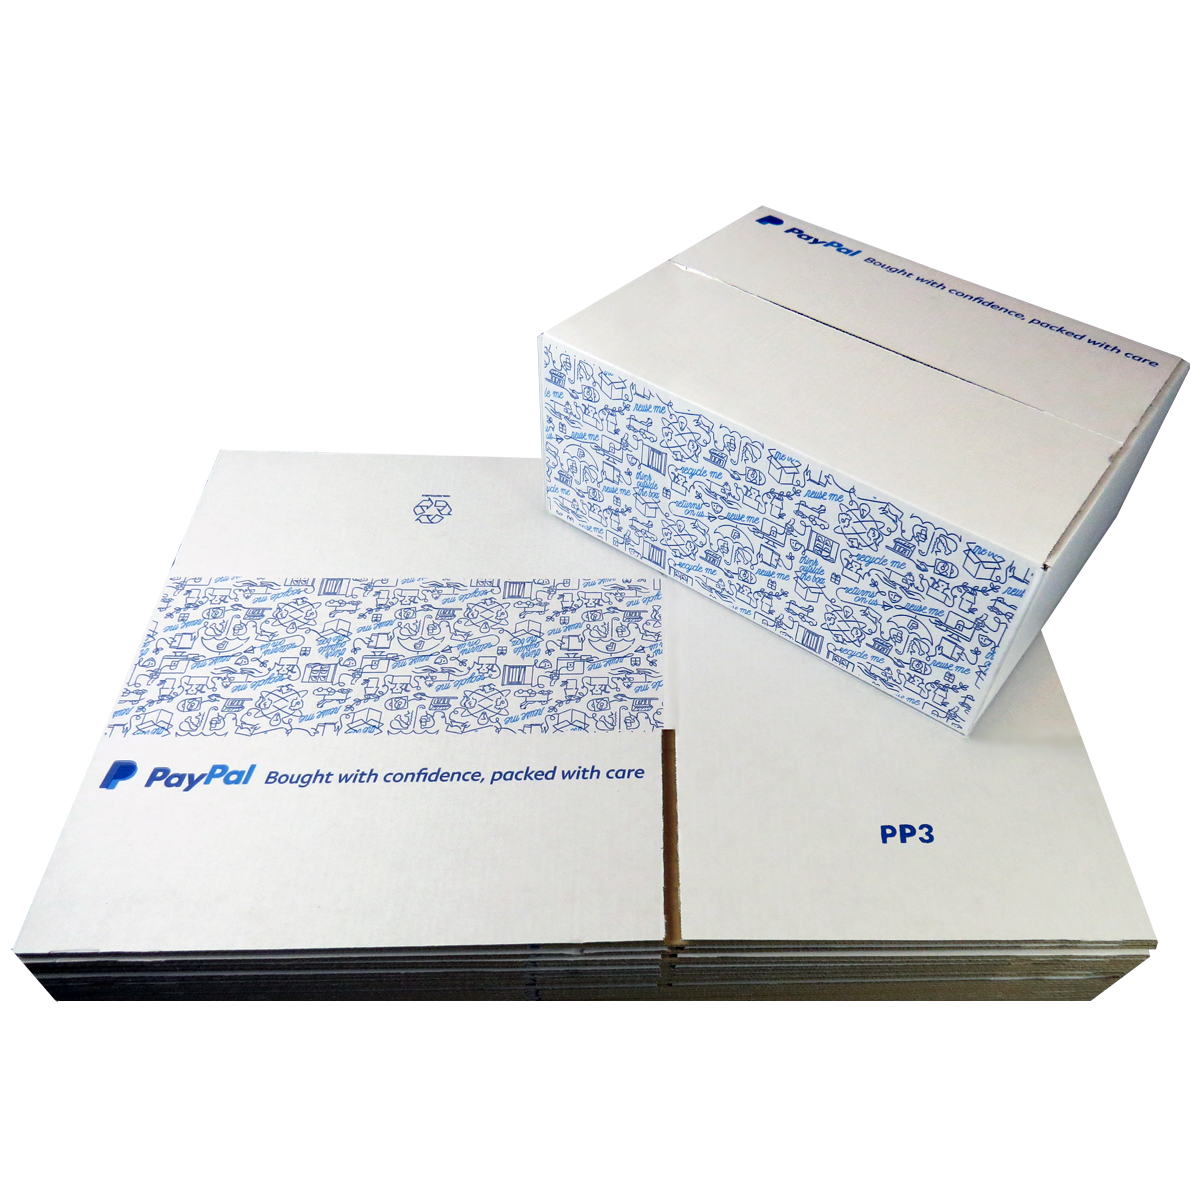 100 x PP3 PayPal Branded Quality White Single Wall Cardboard Postal Mailing Boxes 335x260x135mm